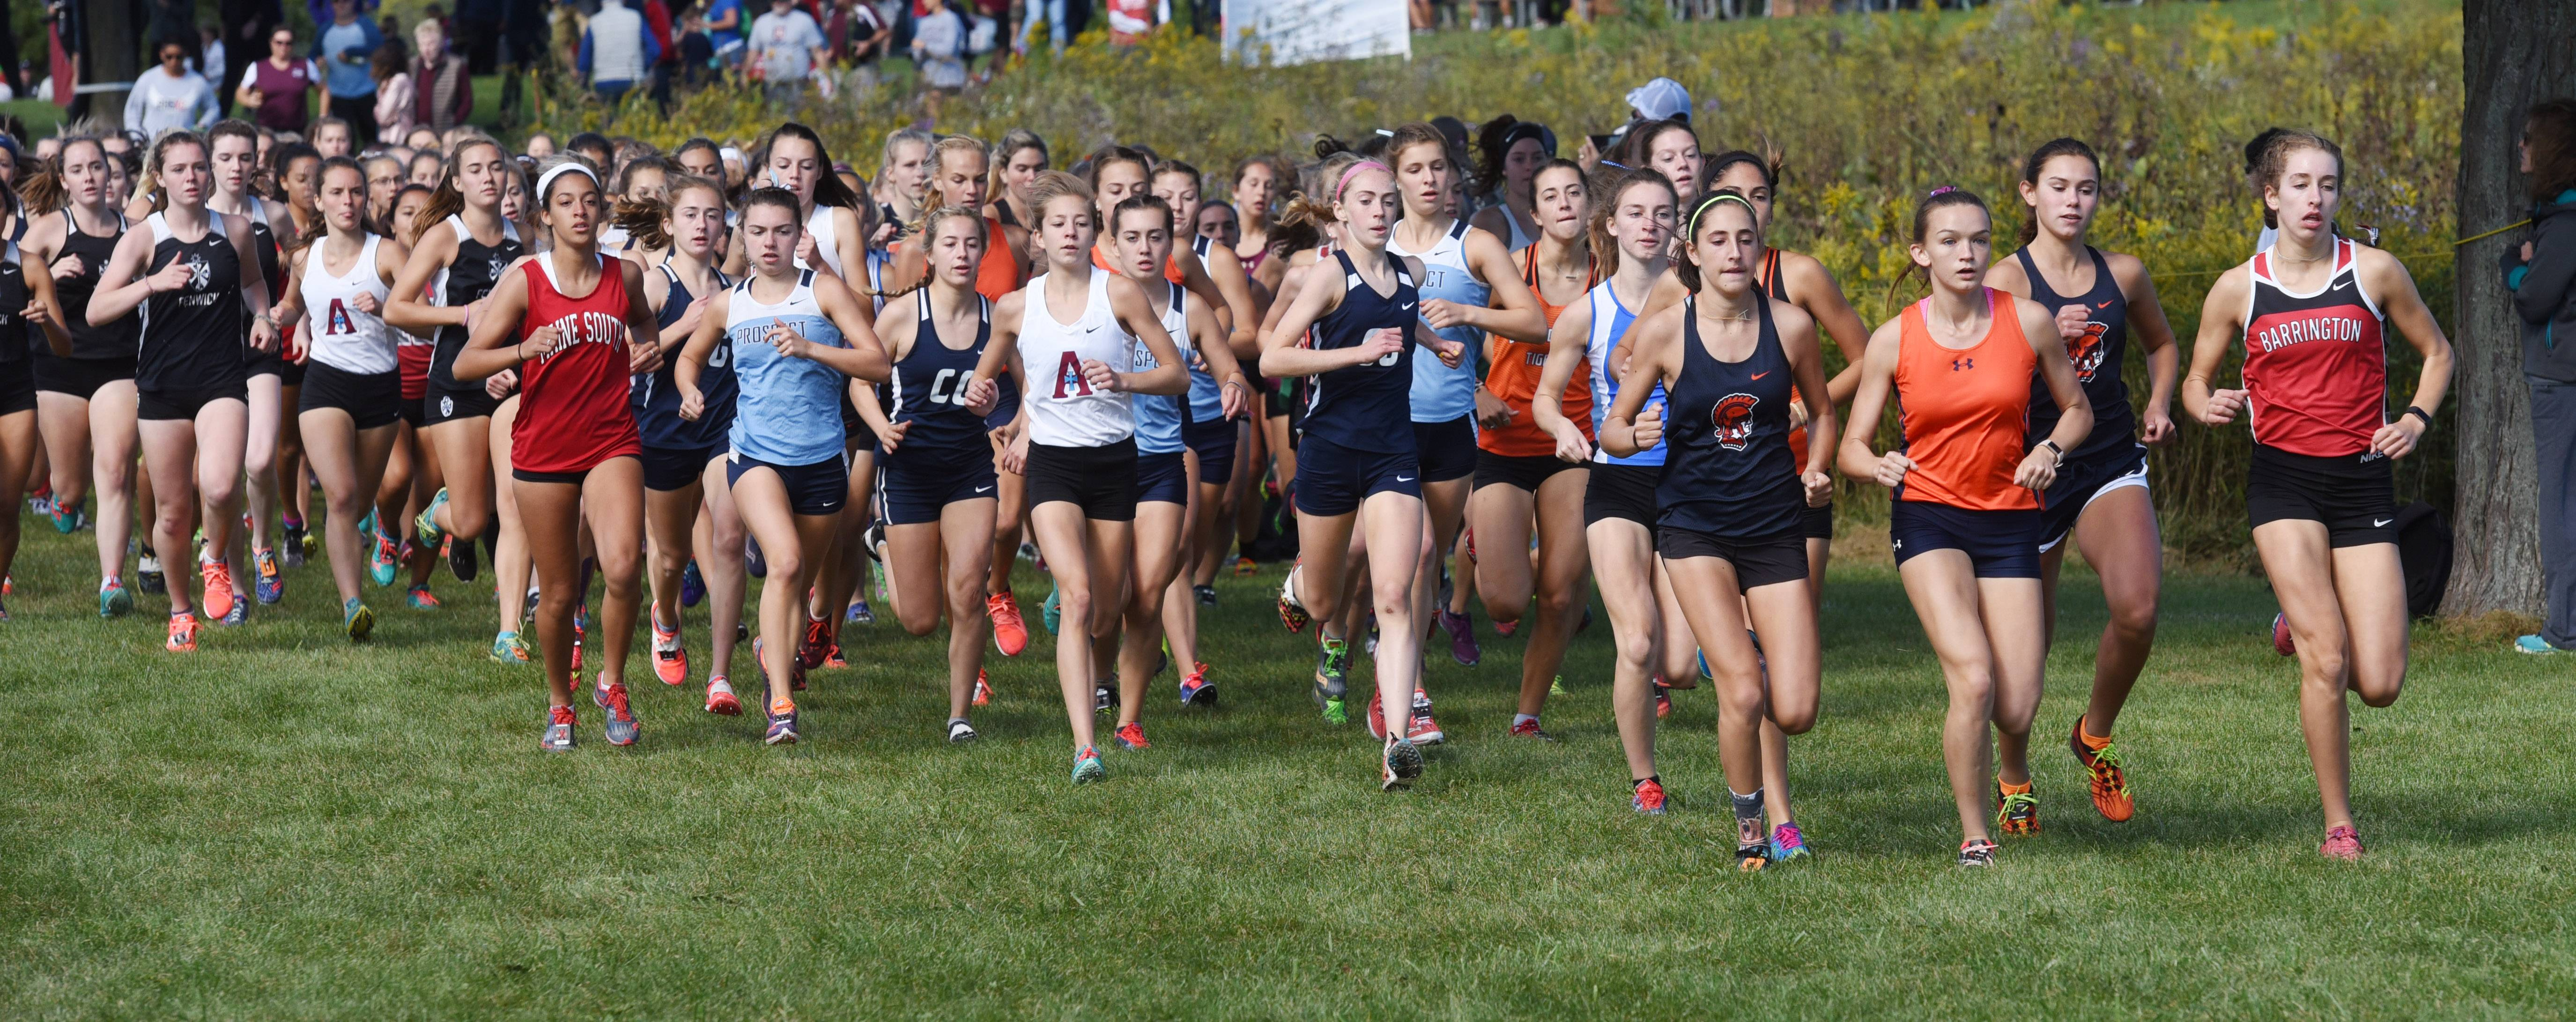 Competitors in the varsity girls race are closely bunched shortly after the start during the Palatine Cross Country Invitational at Deer Grove East Forest Preserve in Palatine Saturday.